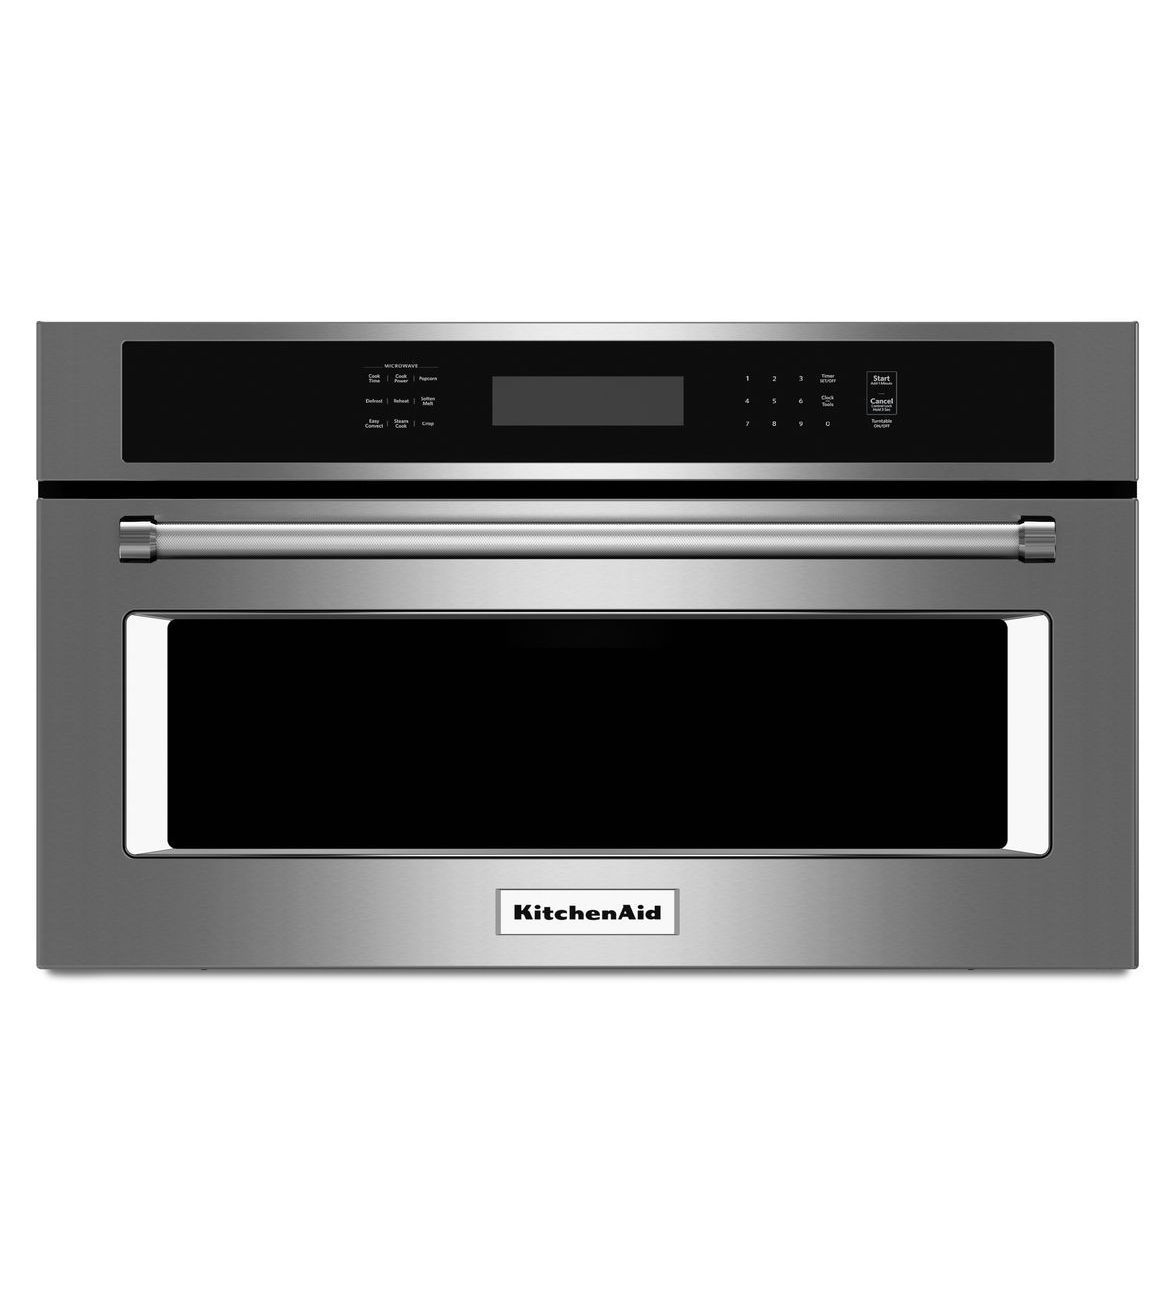 kitchen aid 30 built in microwave oven with convention cooking rh pinterest com